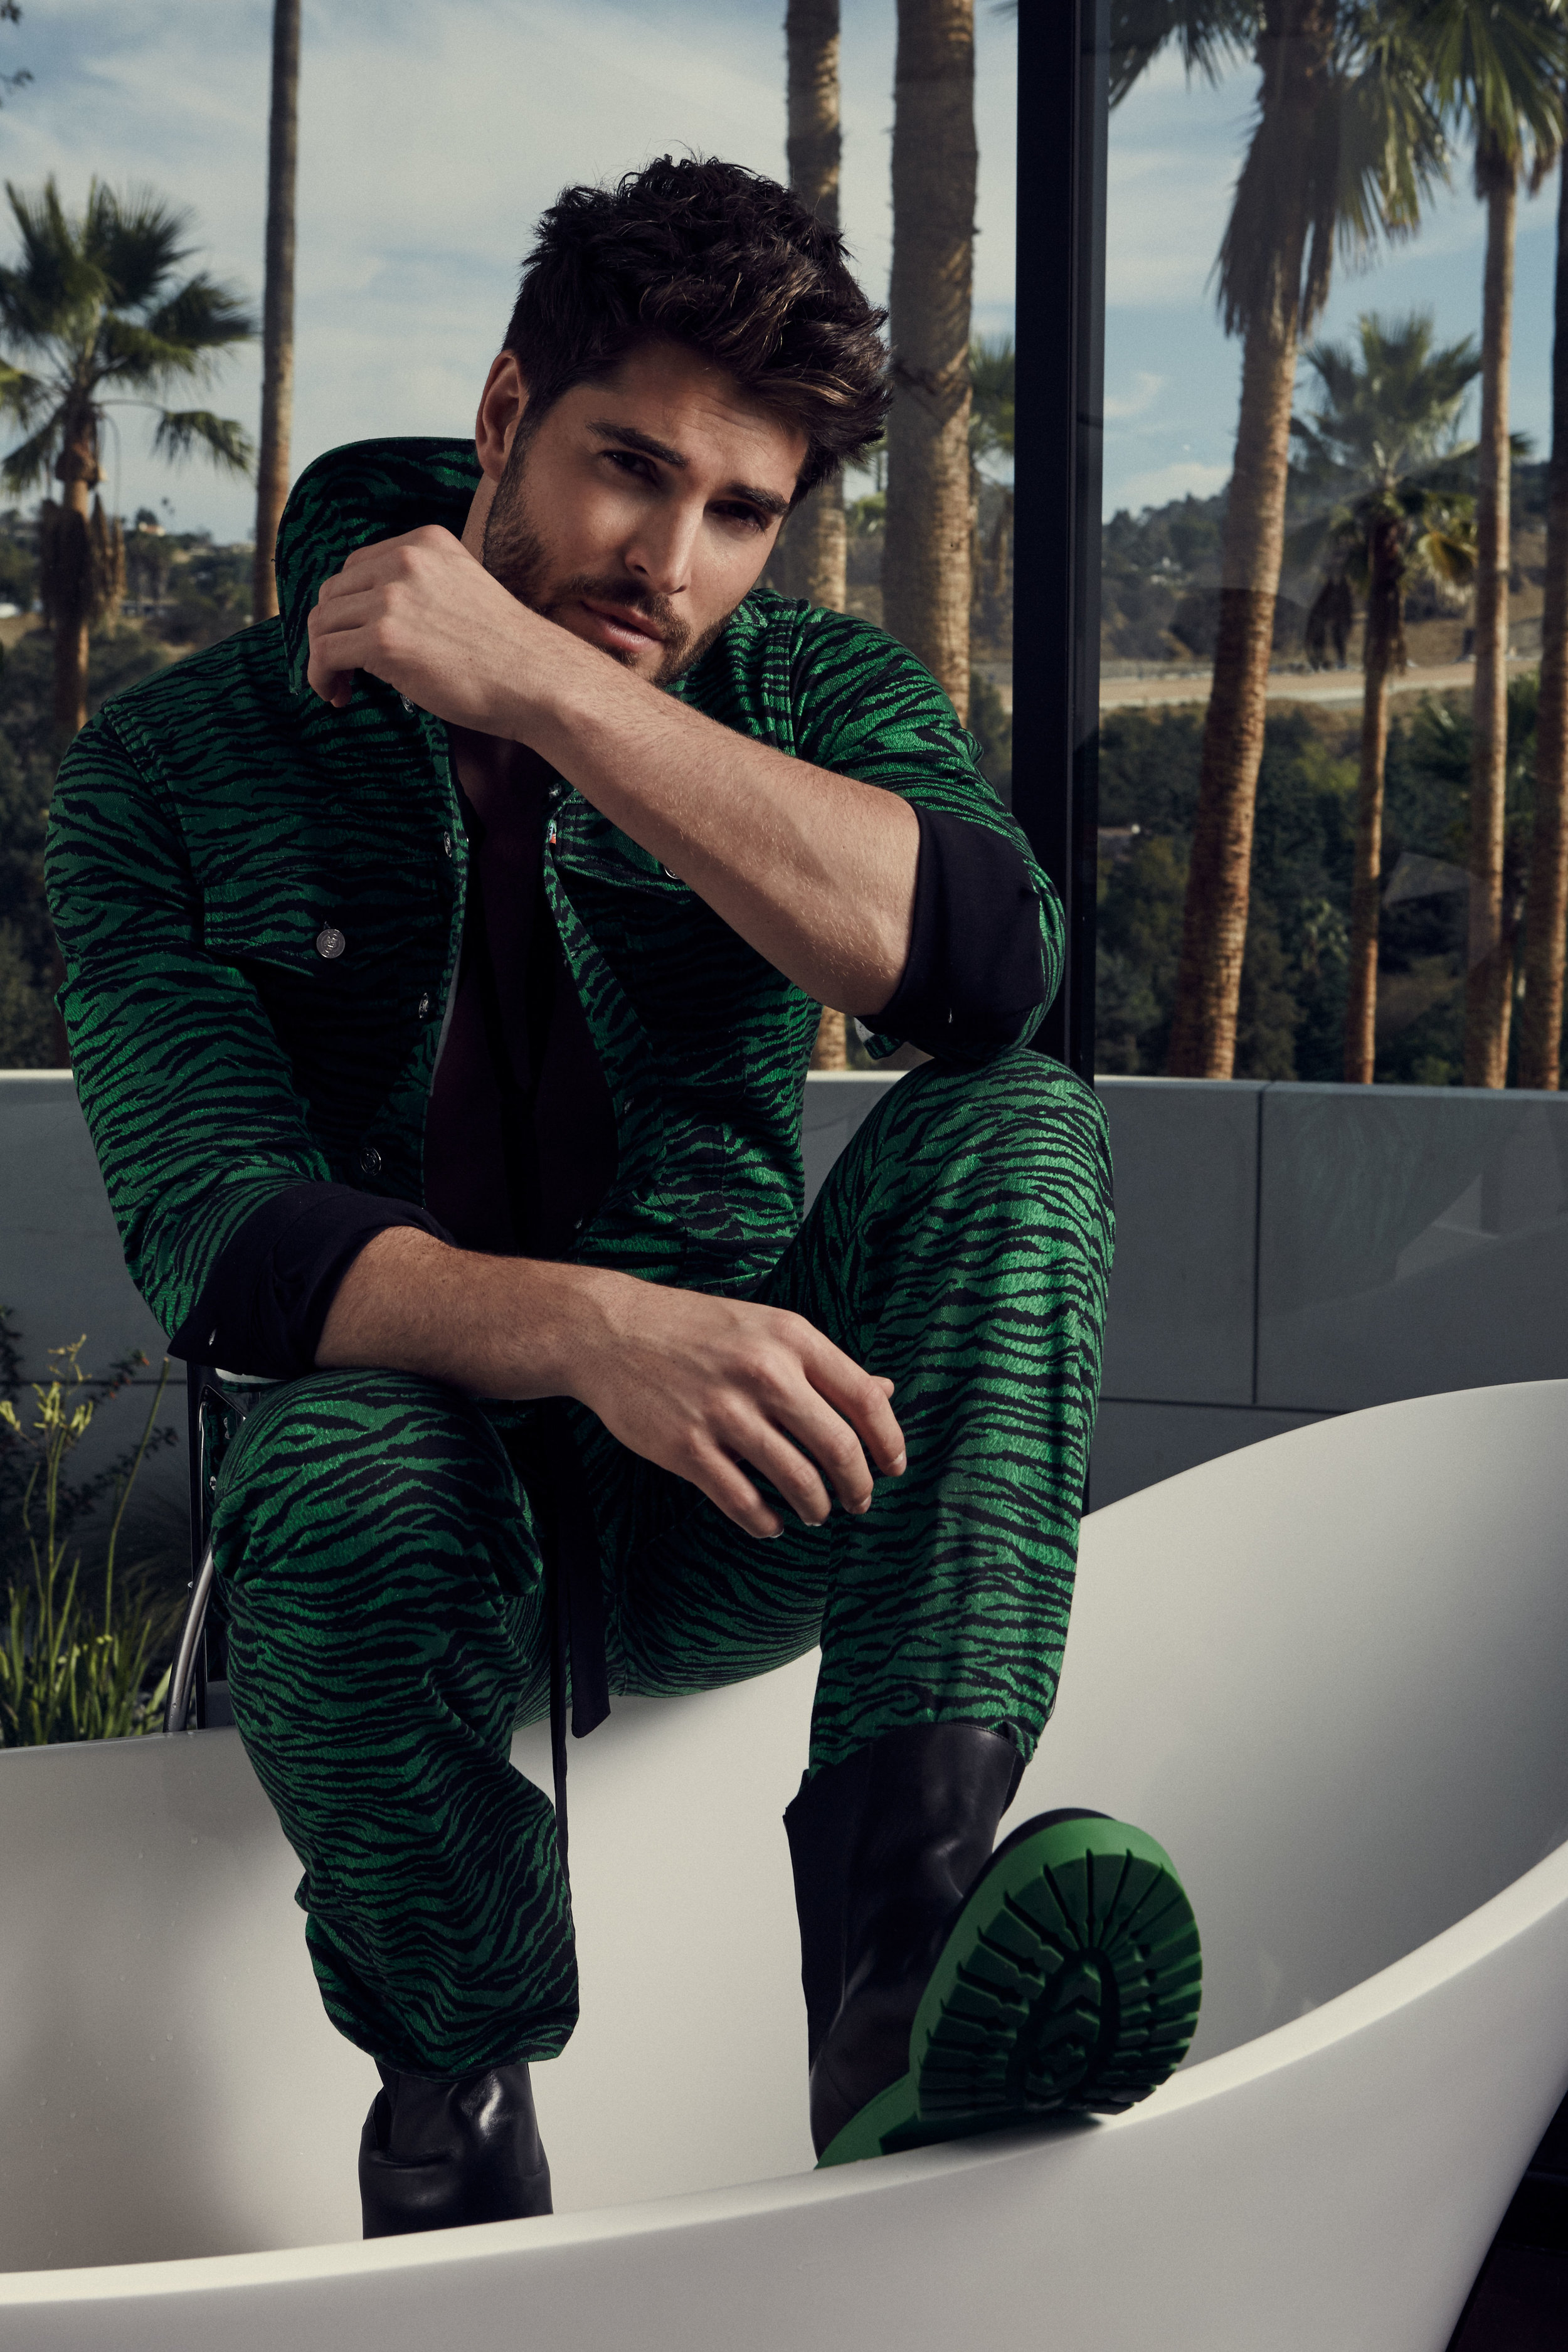 Jumpsuit & Shoes by Kenzo for H&M / Shirt by ASOS